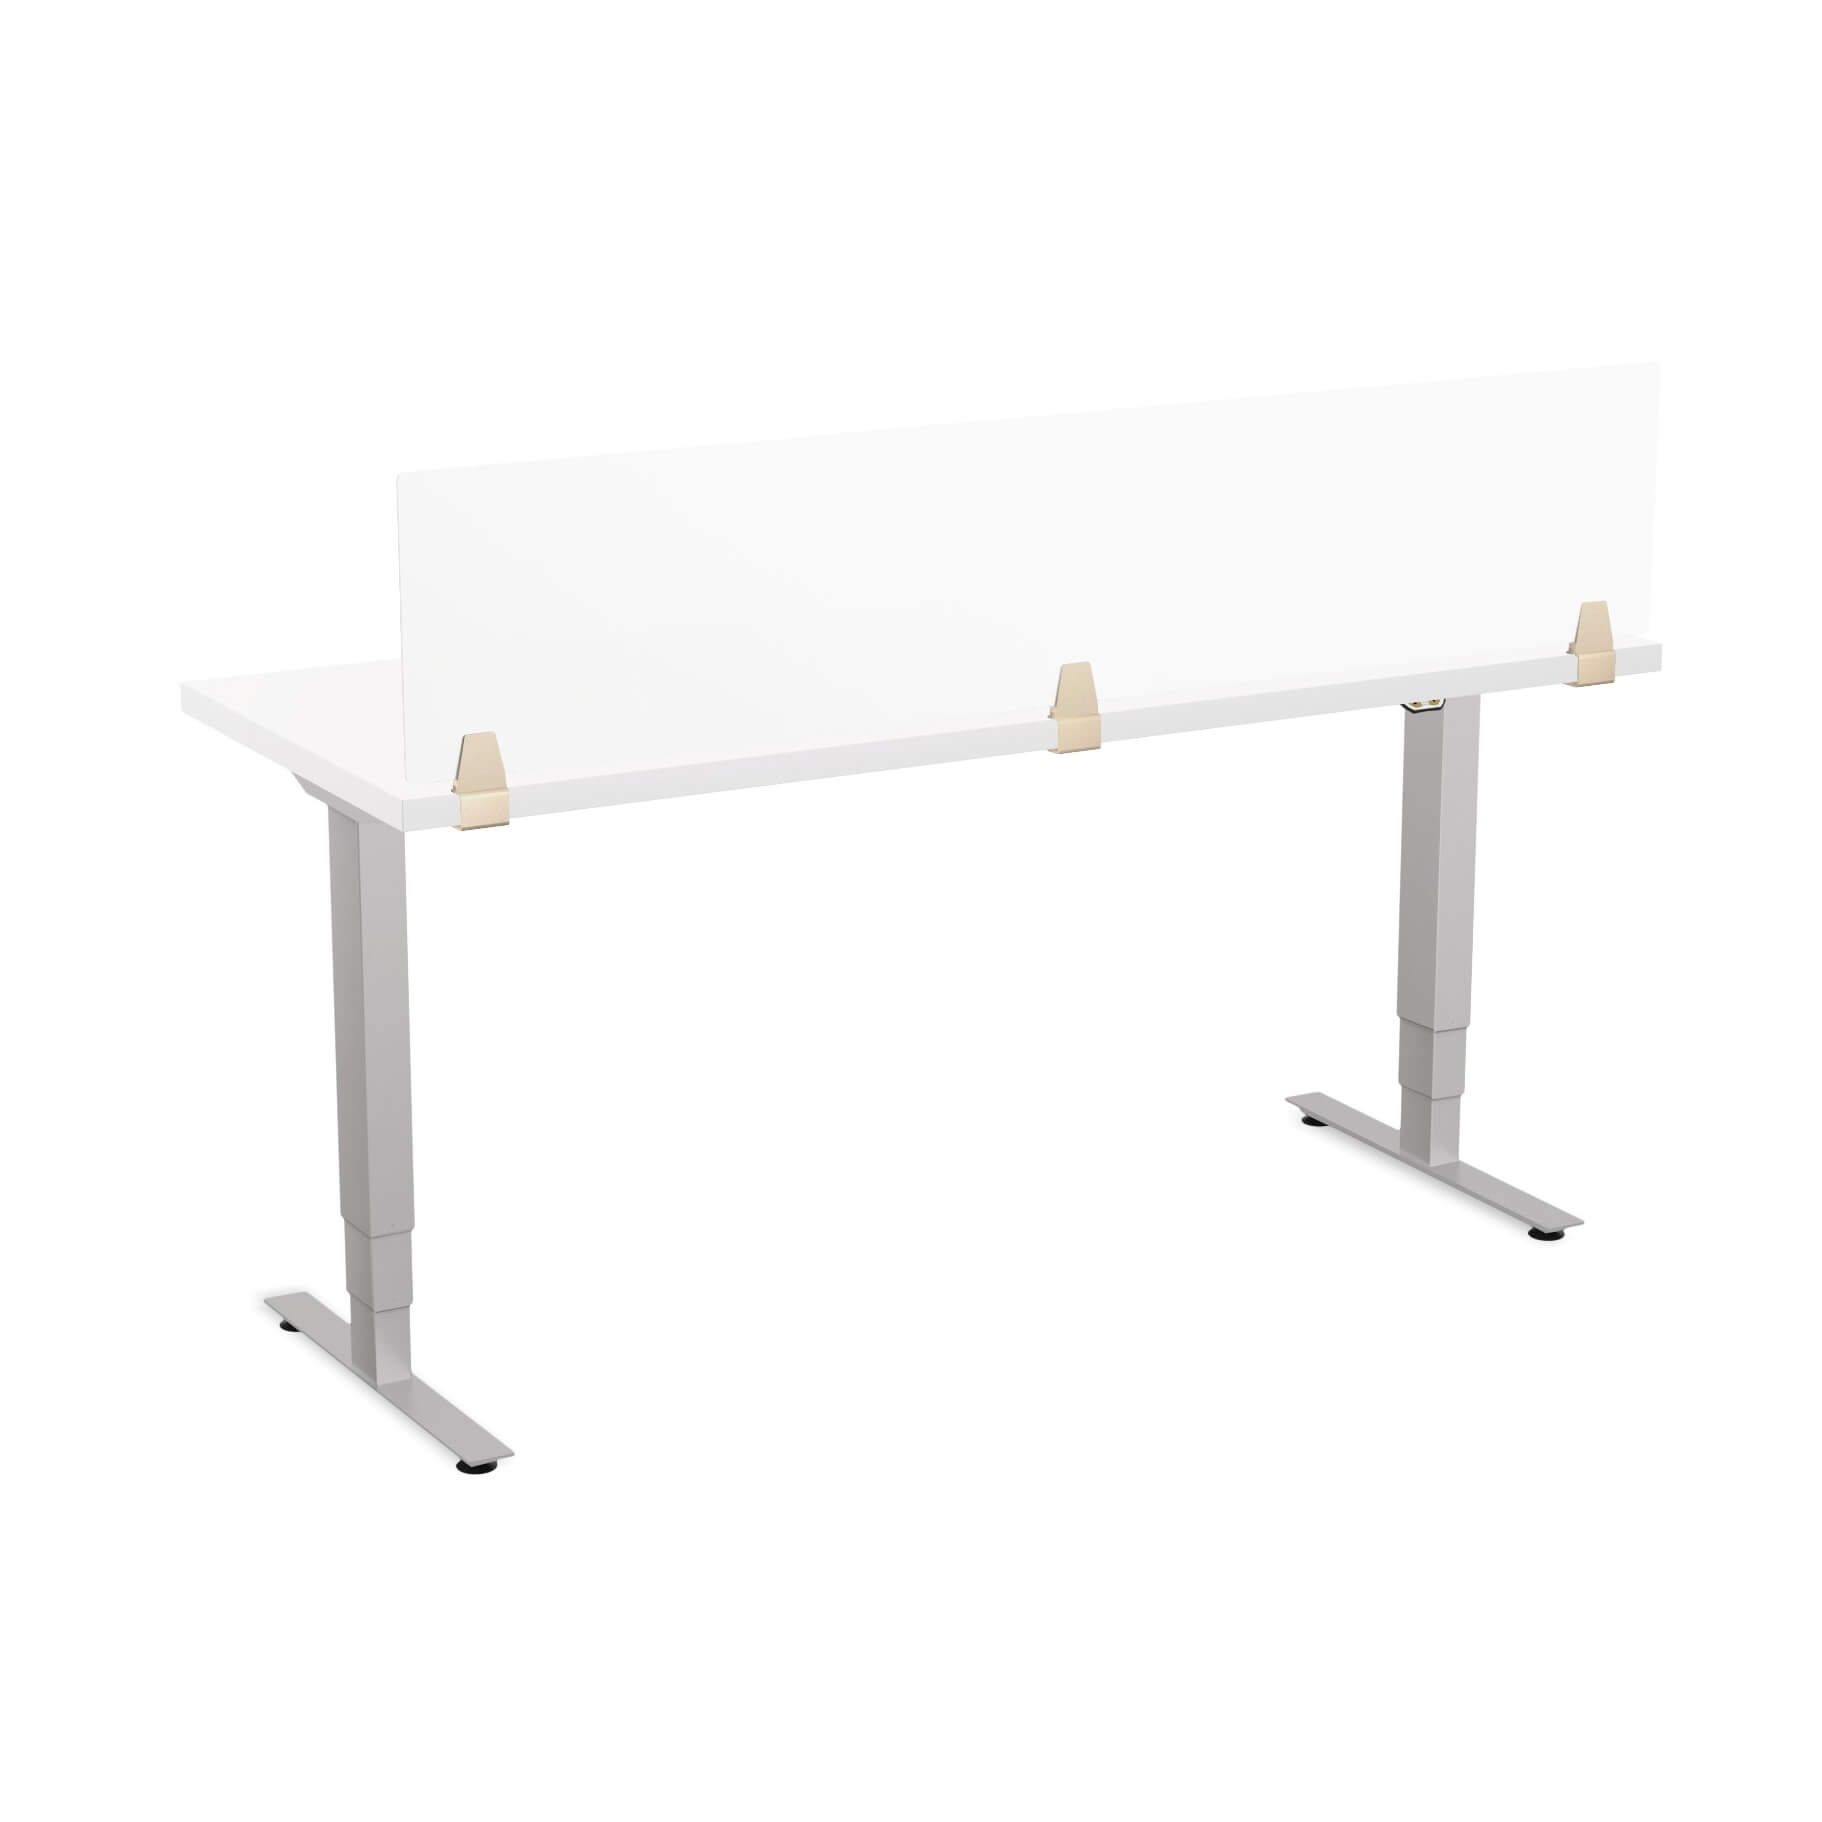 sit-stand-desk-height-adjustable-work-table-1-2.jpg